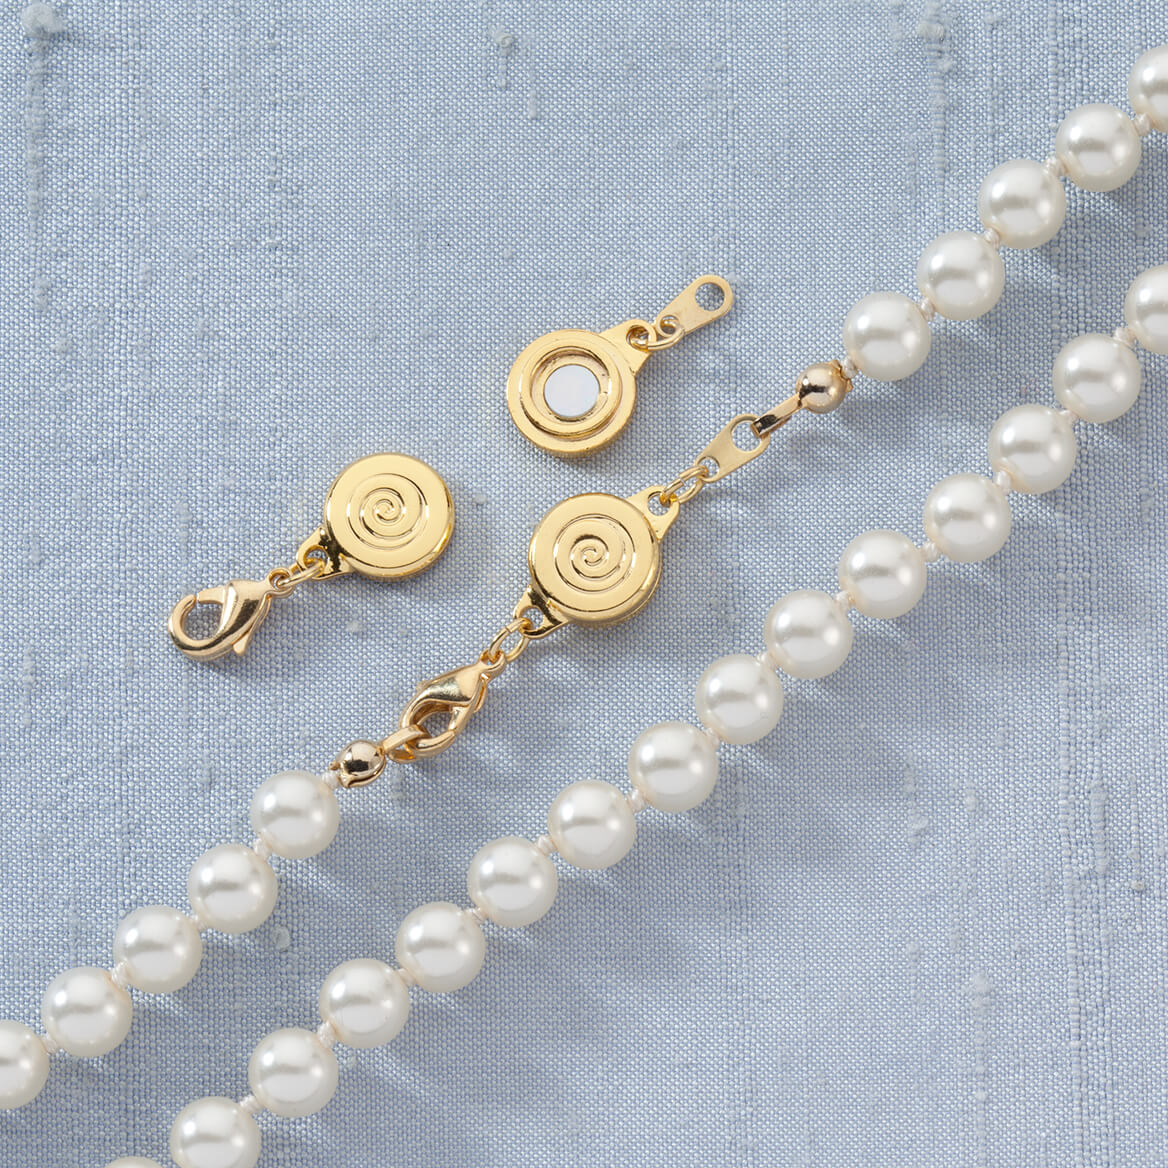 Clasps elderly necklace for Jewelry for